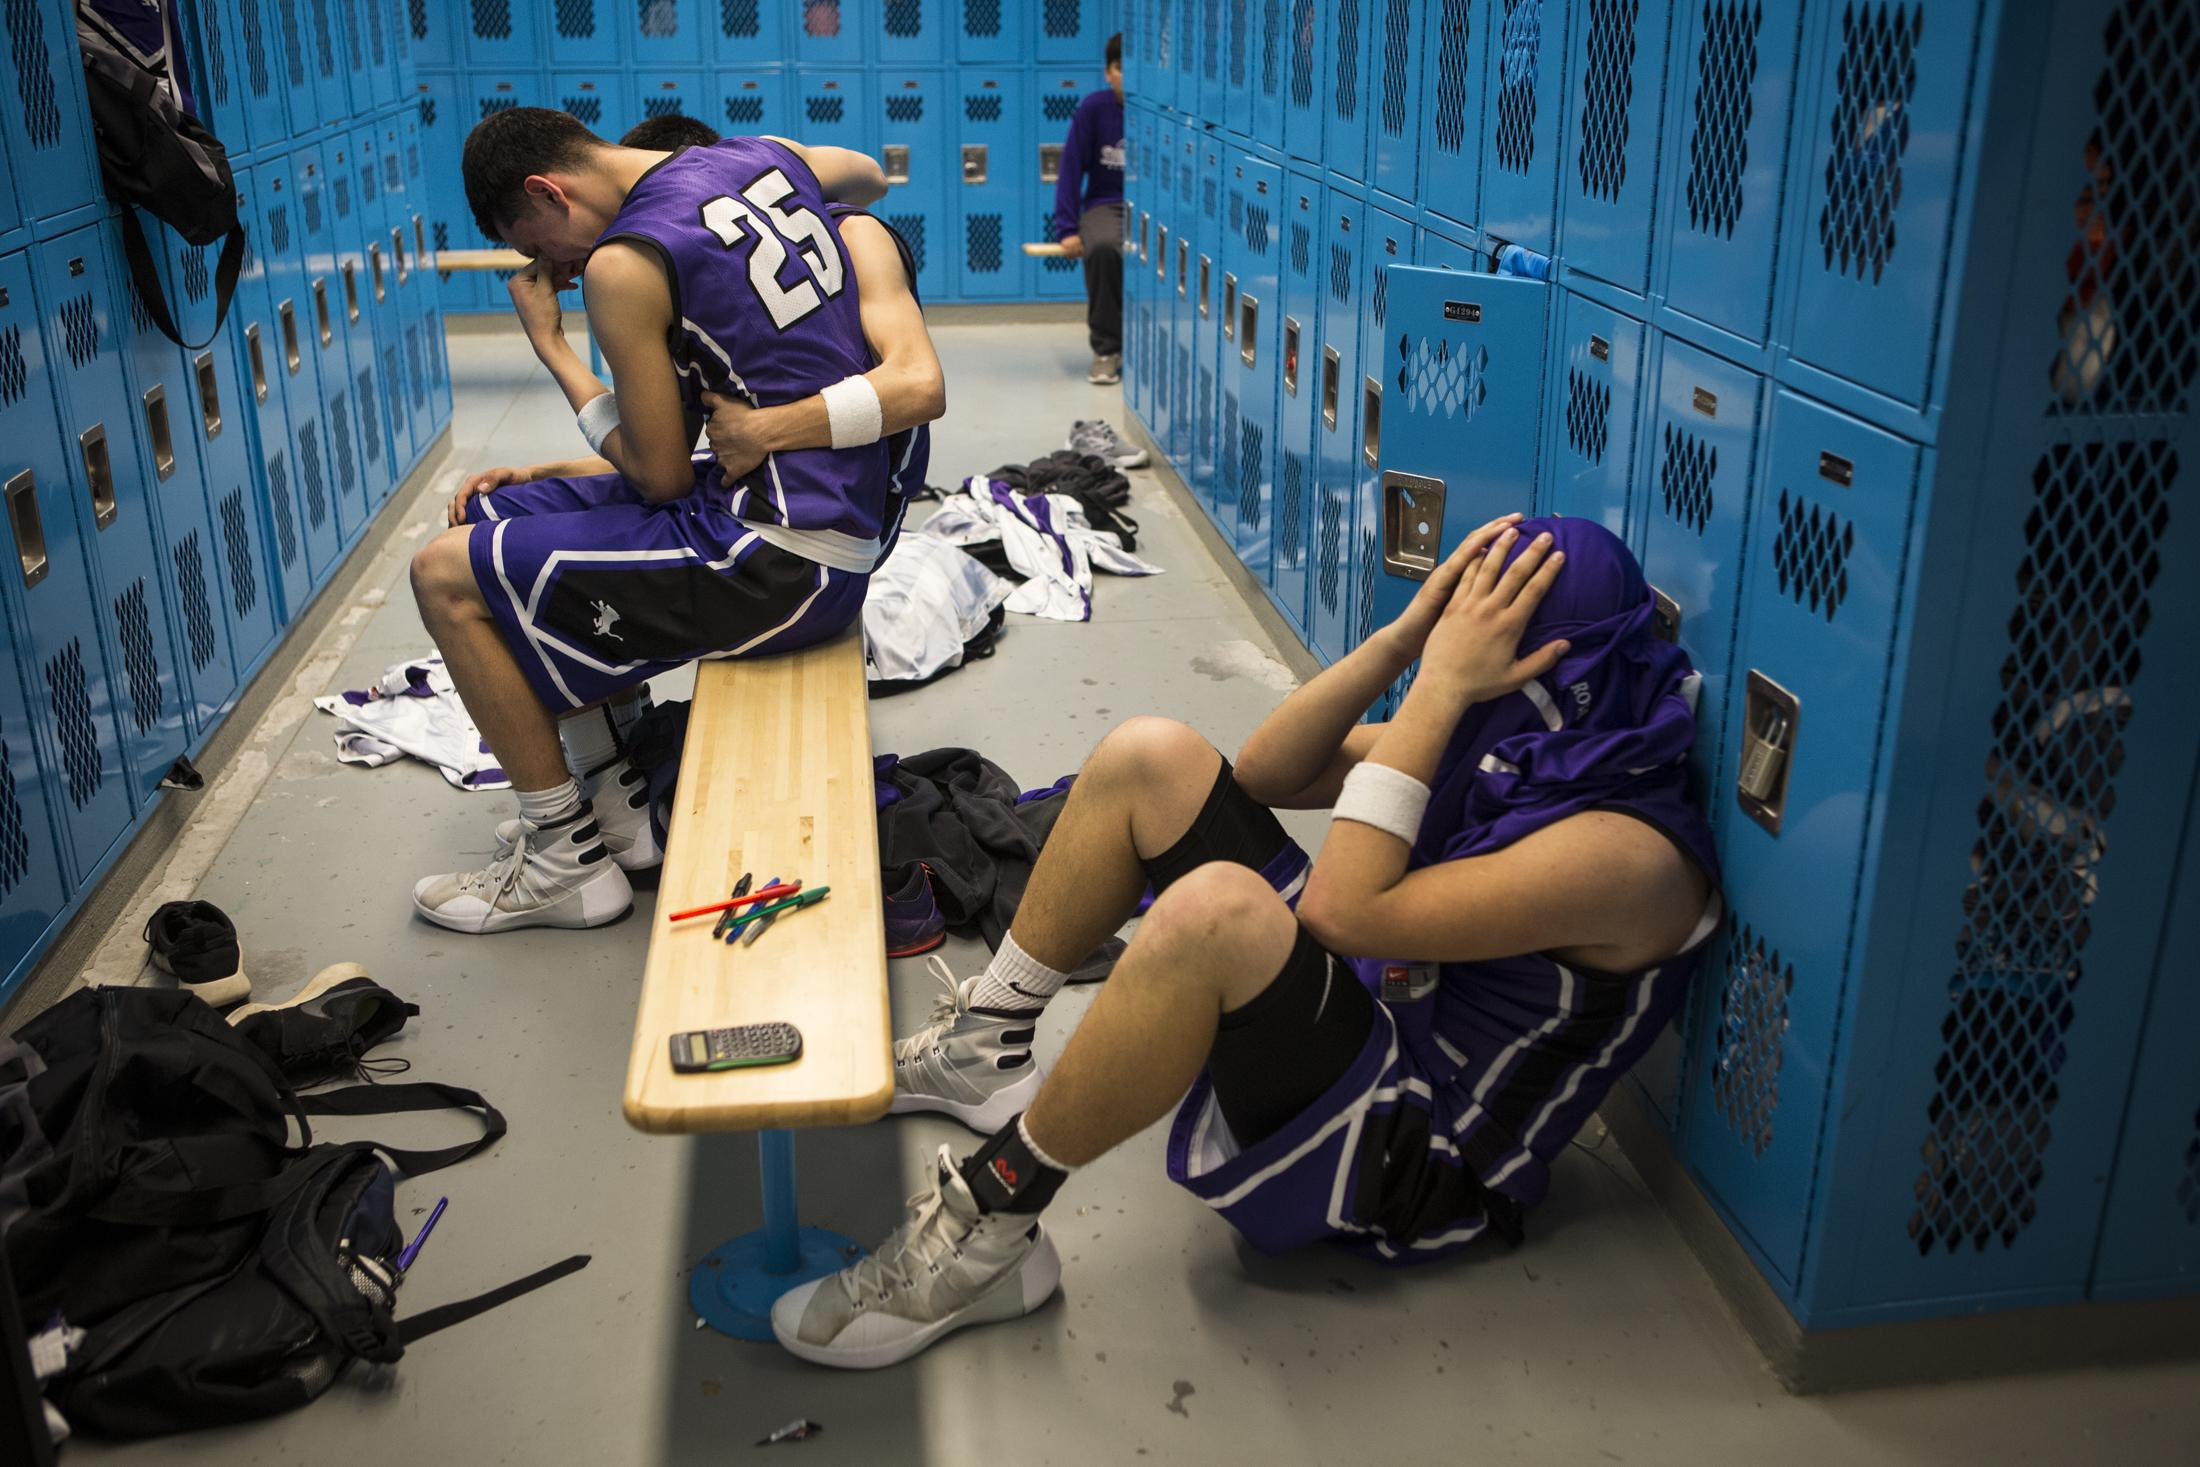 Joaquin Romero hugs a teammate, as Javante Chavez sulks on the floor, after the Santa Rosa Lions were eliminated from the state championship competition by Tucumcari on March 9, 2016. The Lions were defeated 65-63.